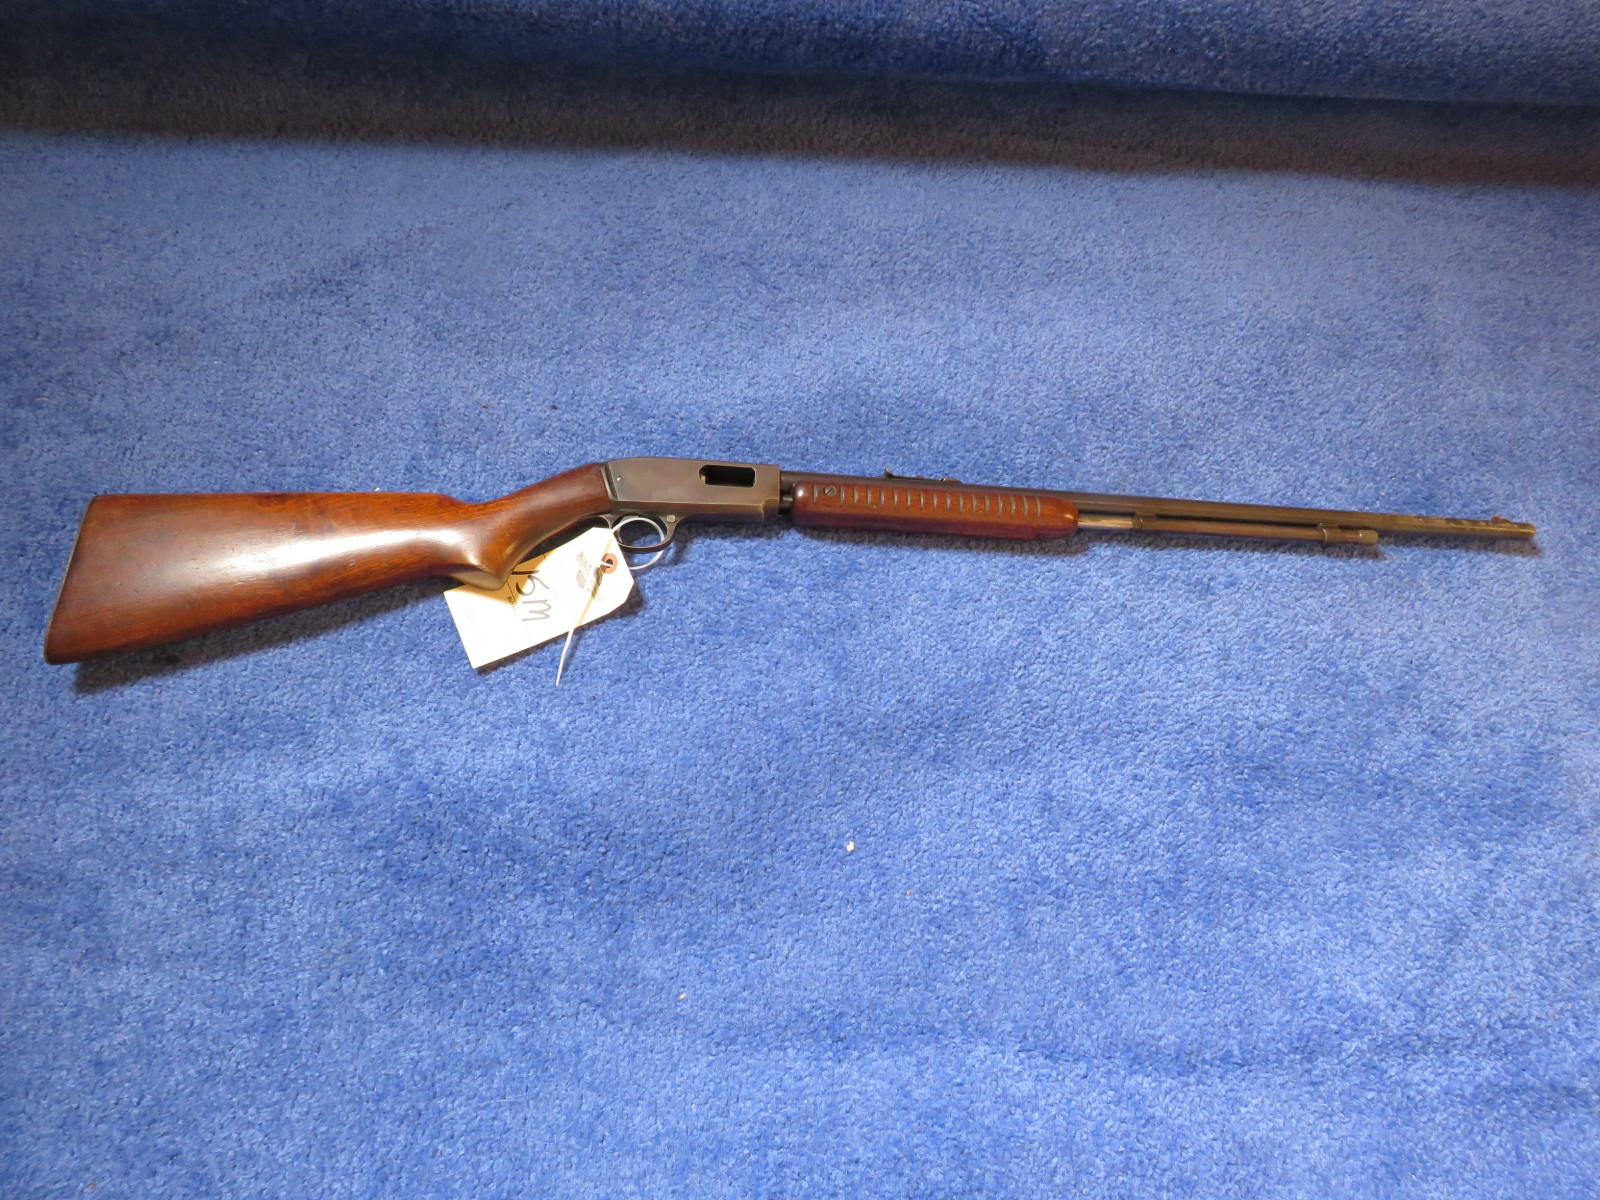 Winchester Model 61 .22 Rifle - Image 1